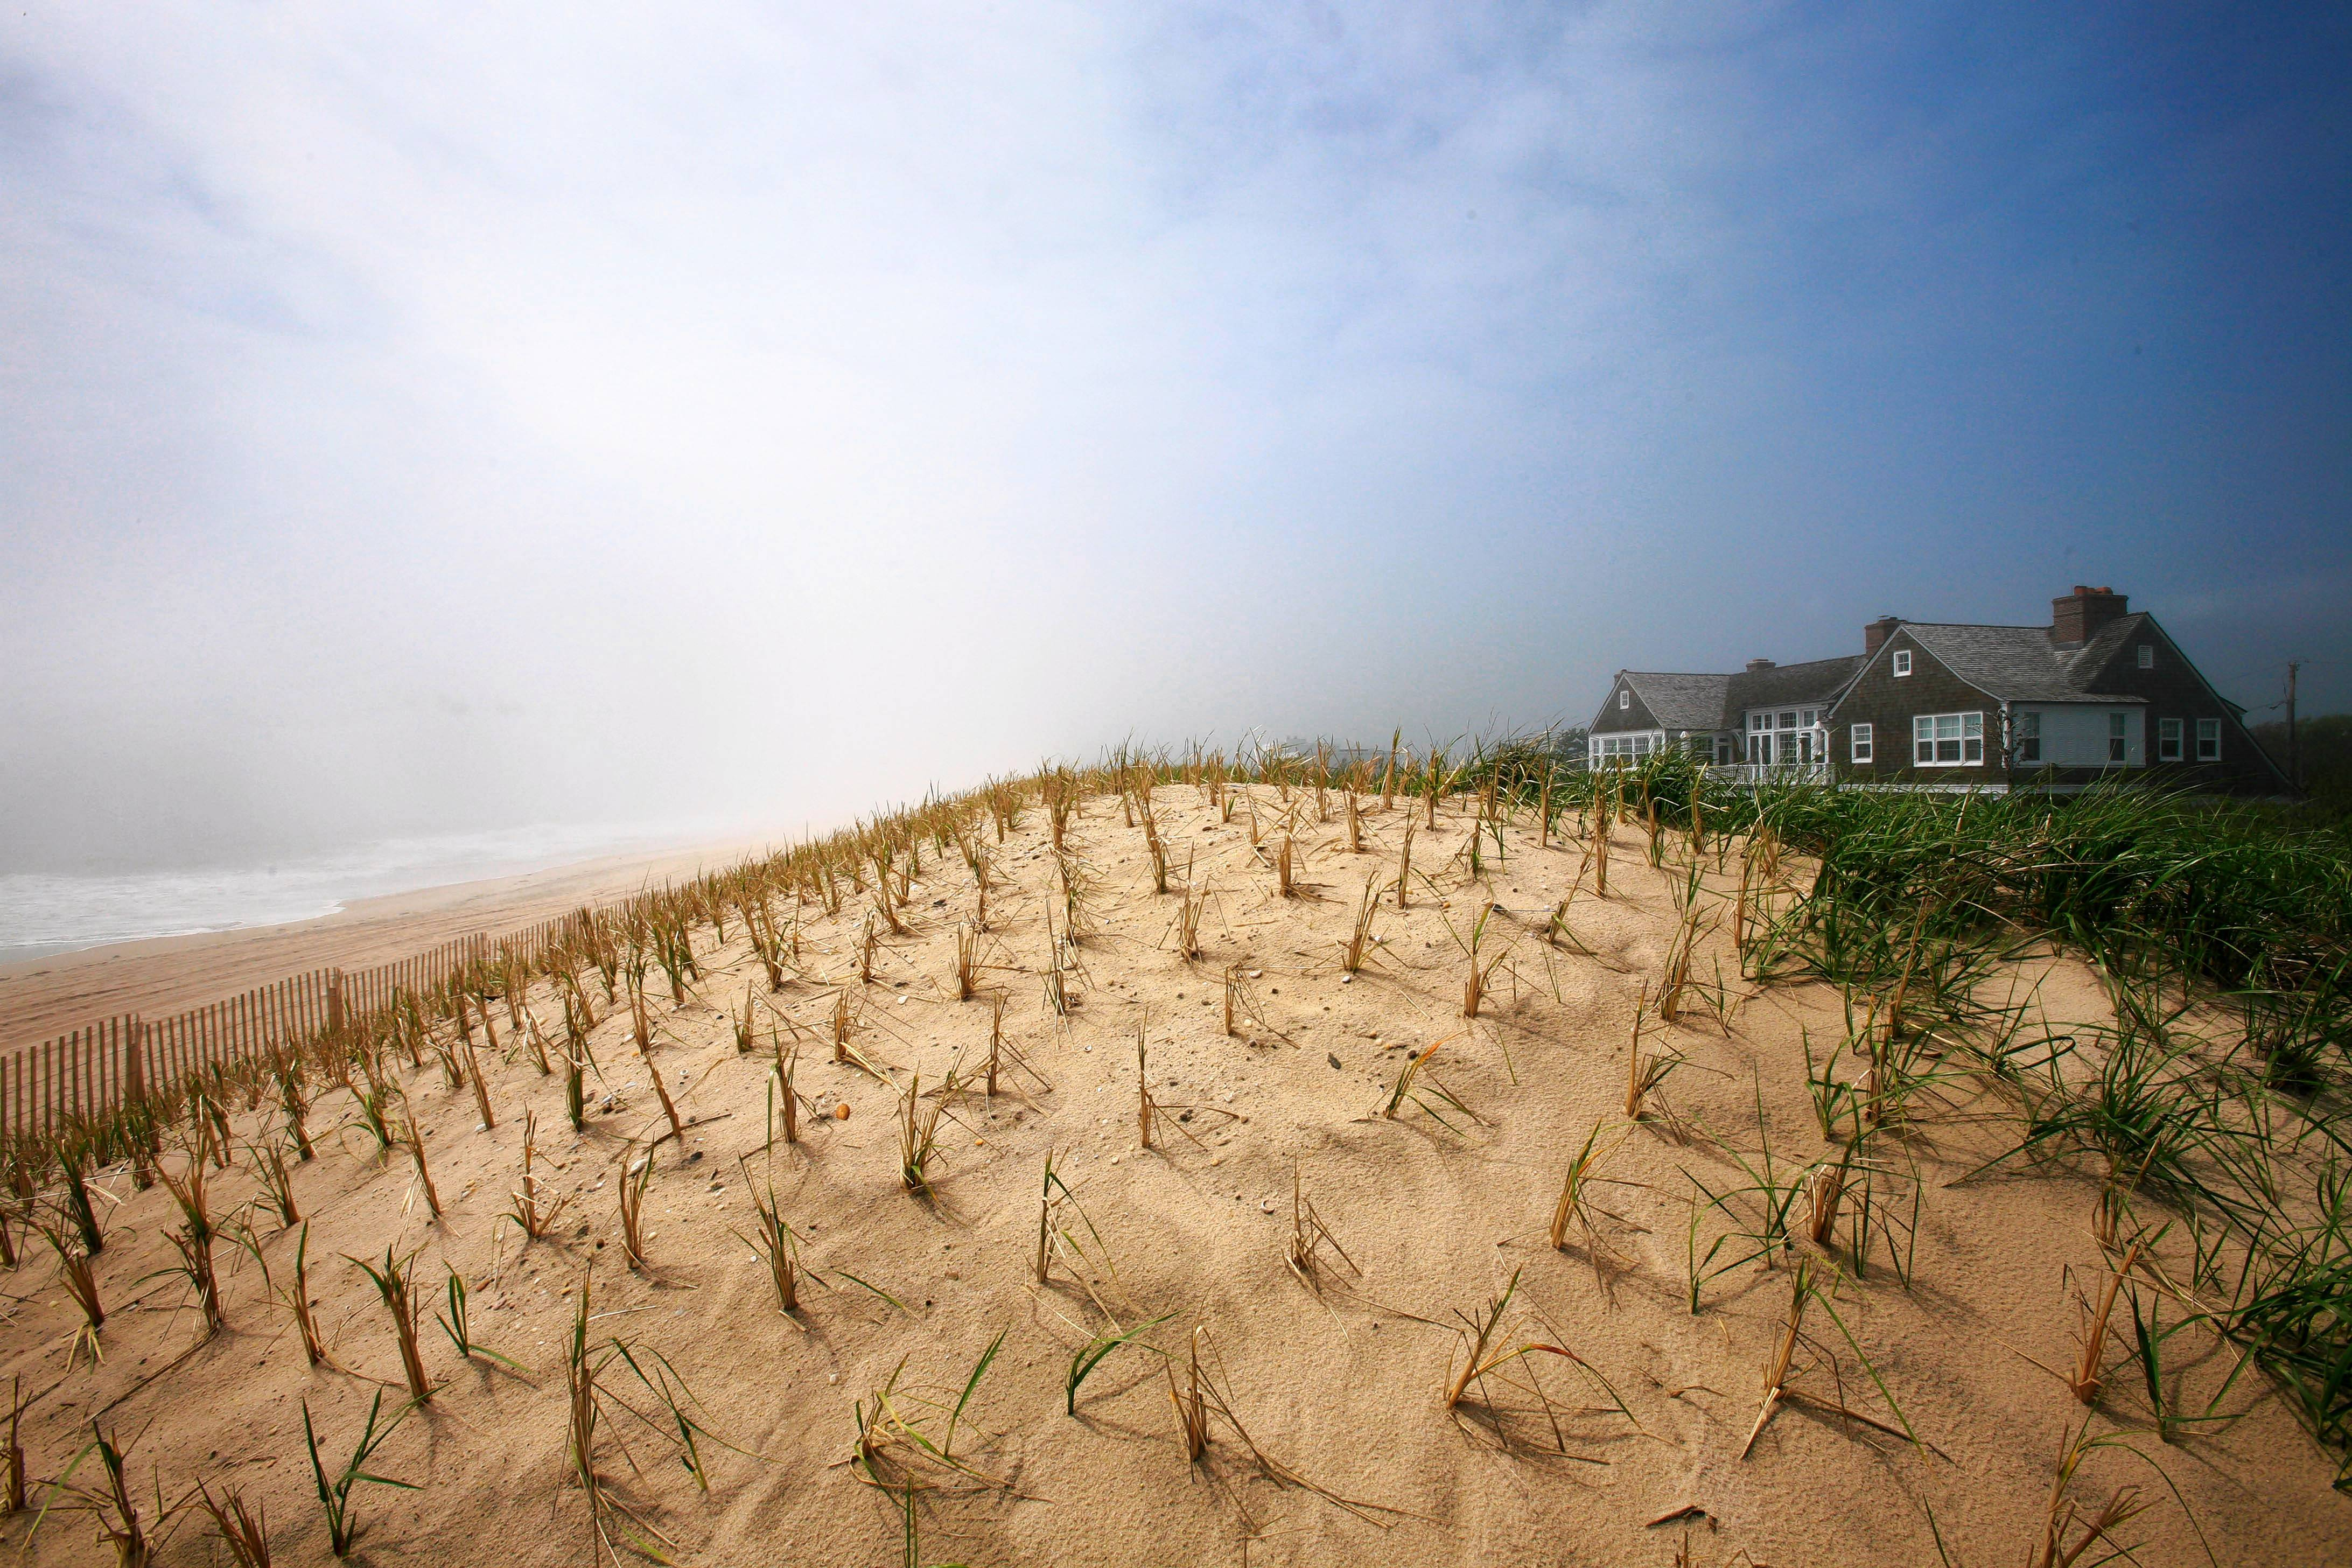 Unsold Luxury Homes Are Piling Up In The Hamptons. Is New Tax Law To Blame?